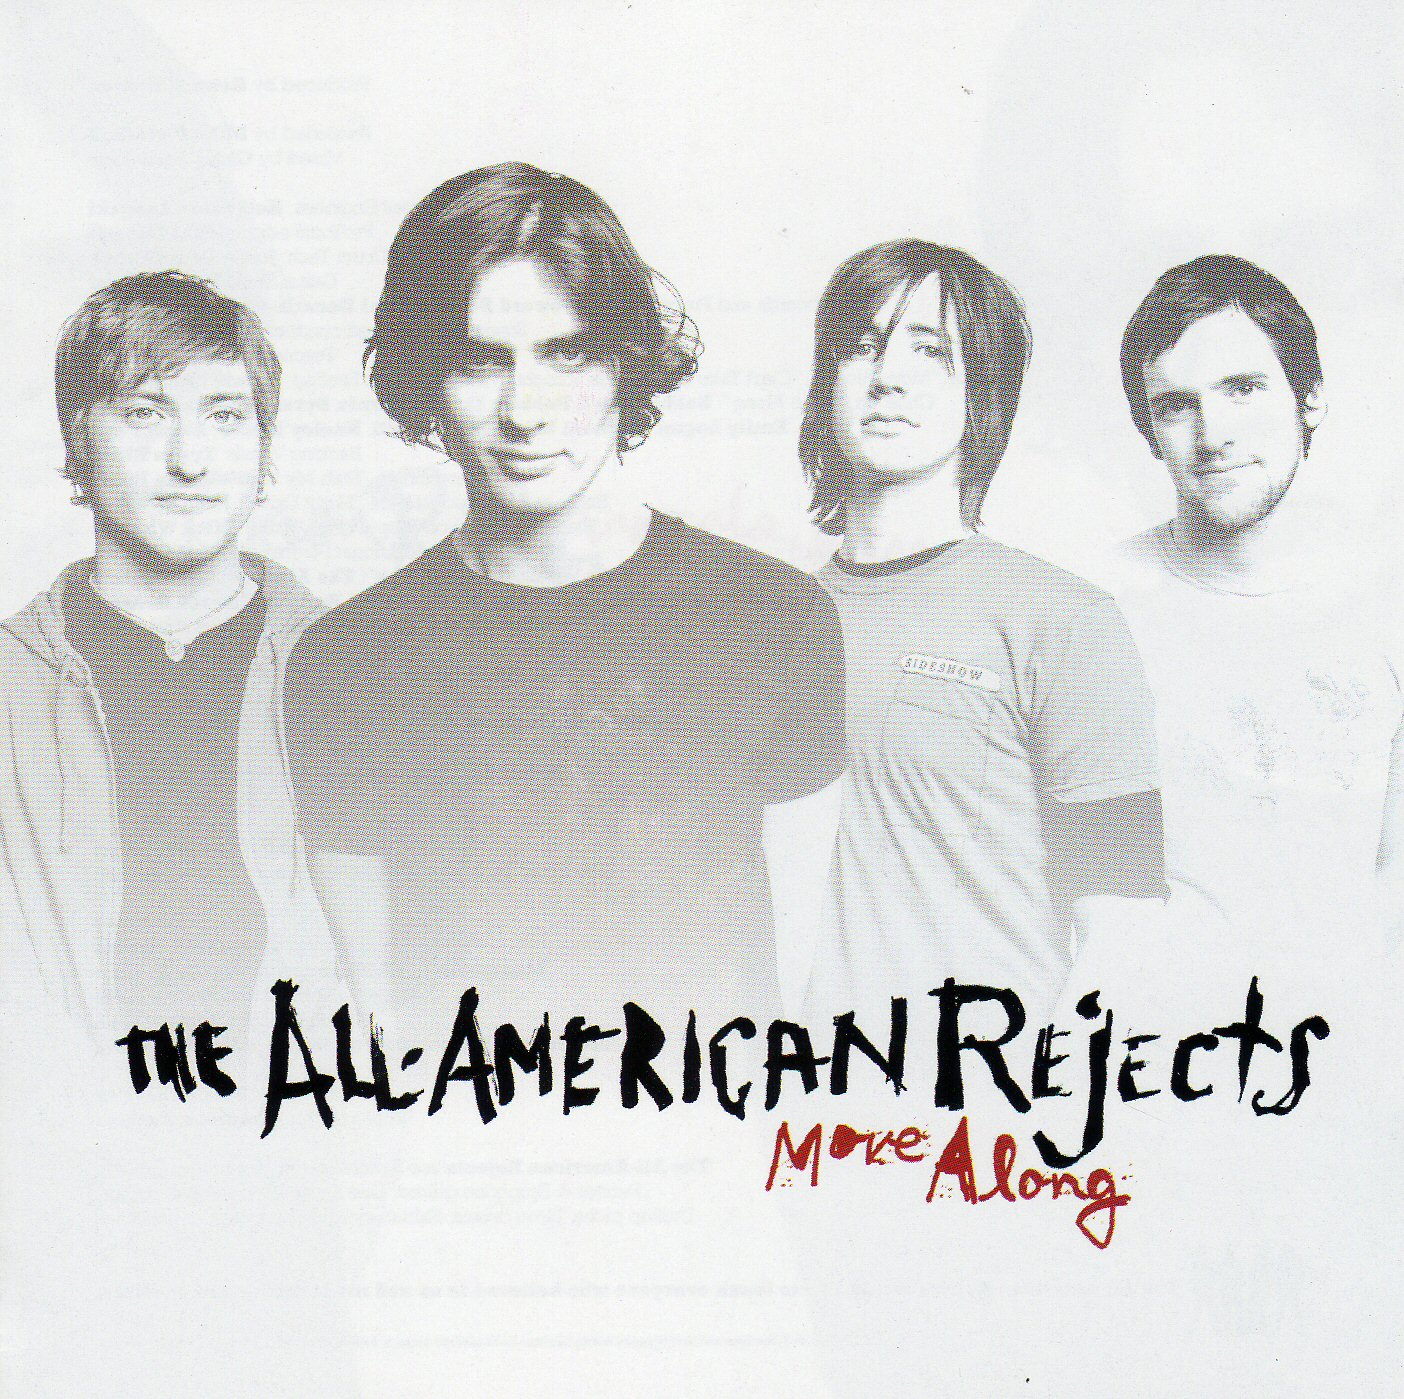 http://1.bp.blogspot.com/-5iACV7alir0/T4r7XDlo88I/AAAAAAAAAYo/qZfYe0YRV2w/s1600/the_all_american_rejects_move_along_2005.jpg